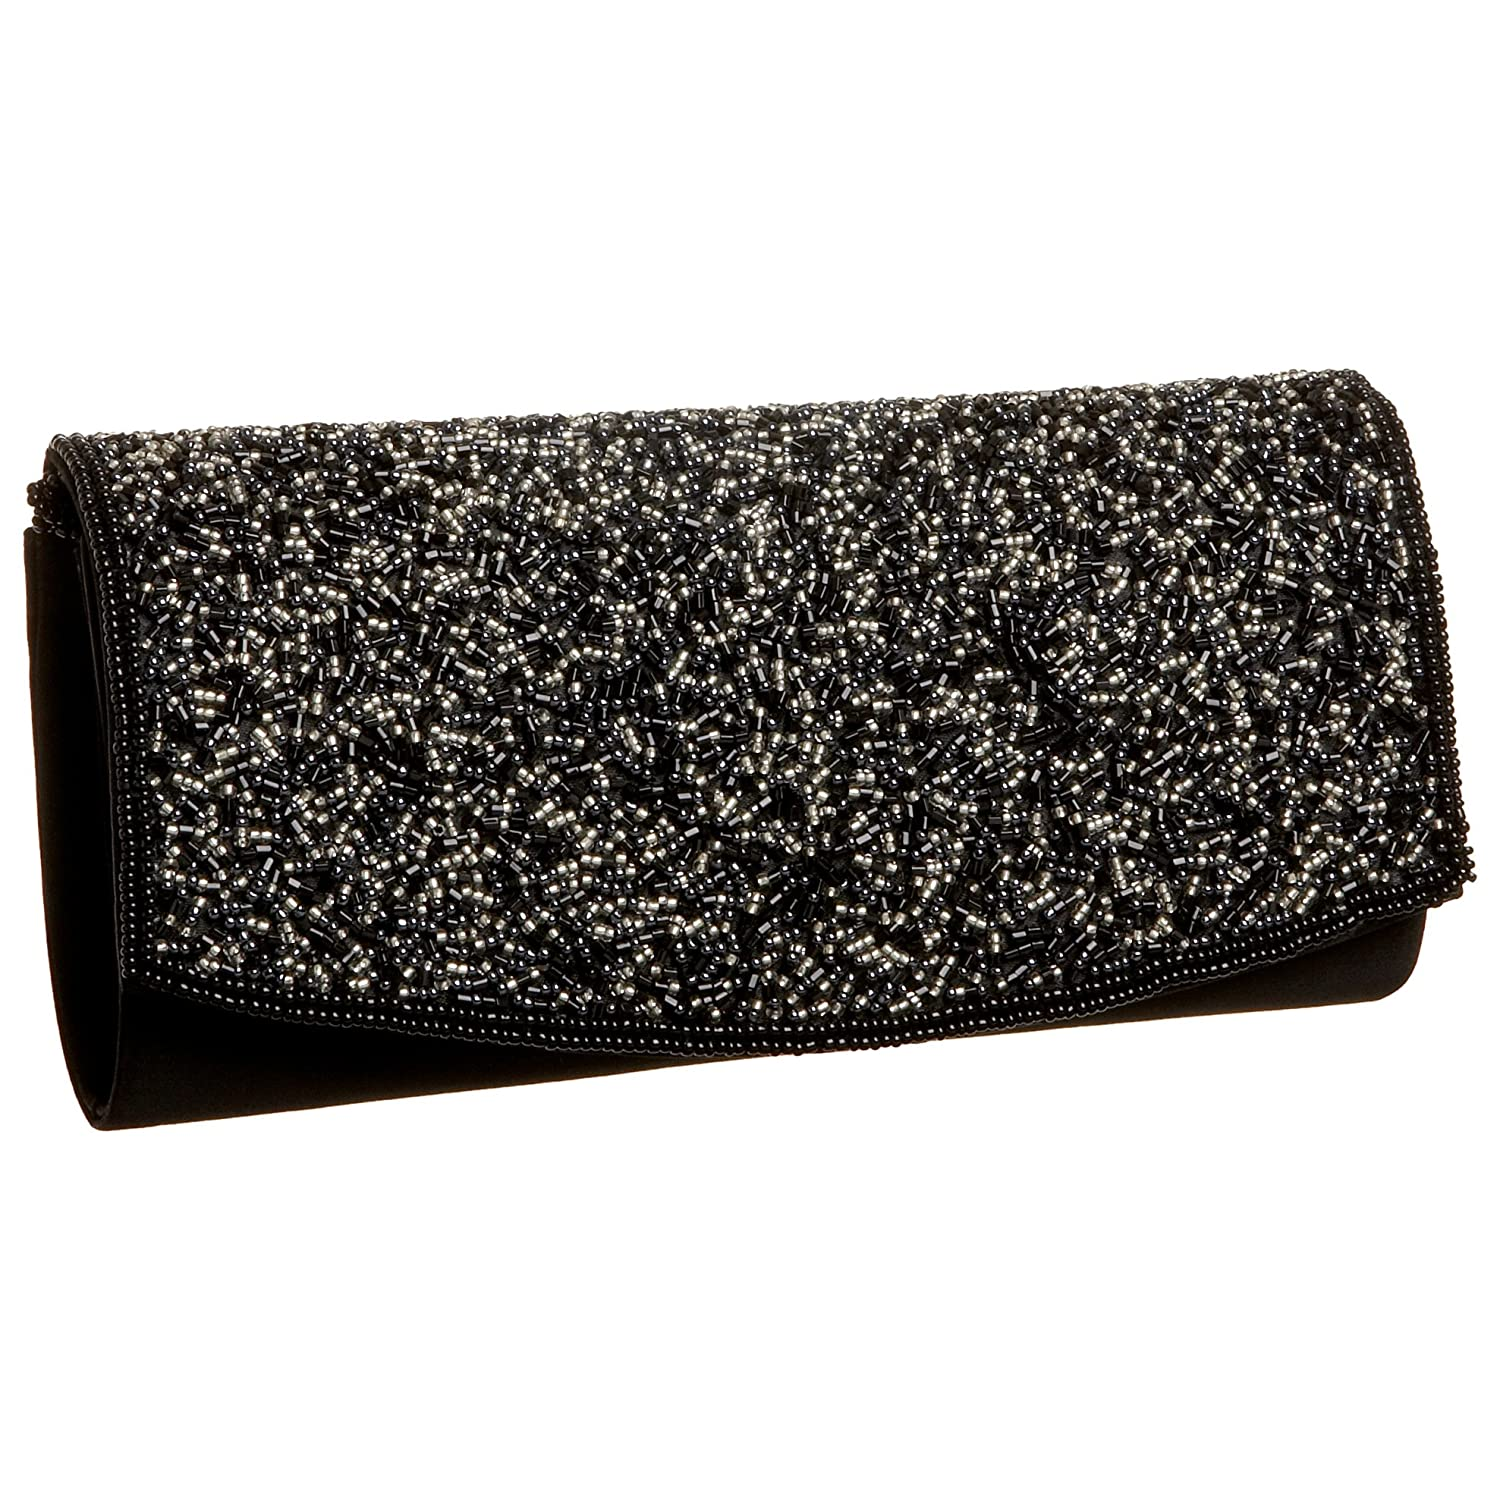 Clutch Bag Patterns - Pattern Collections